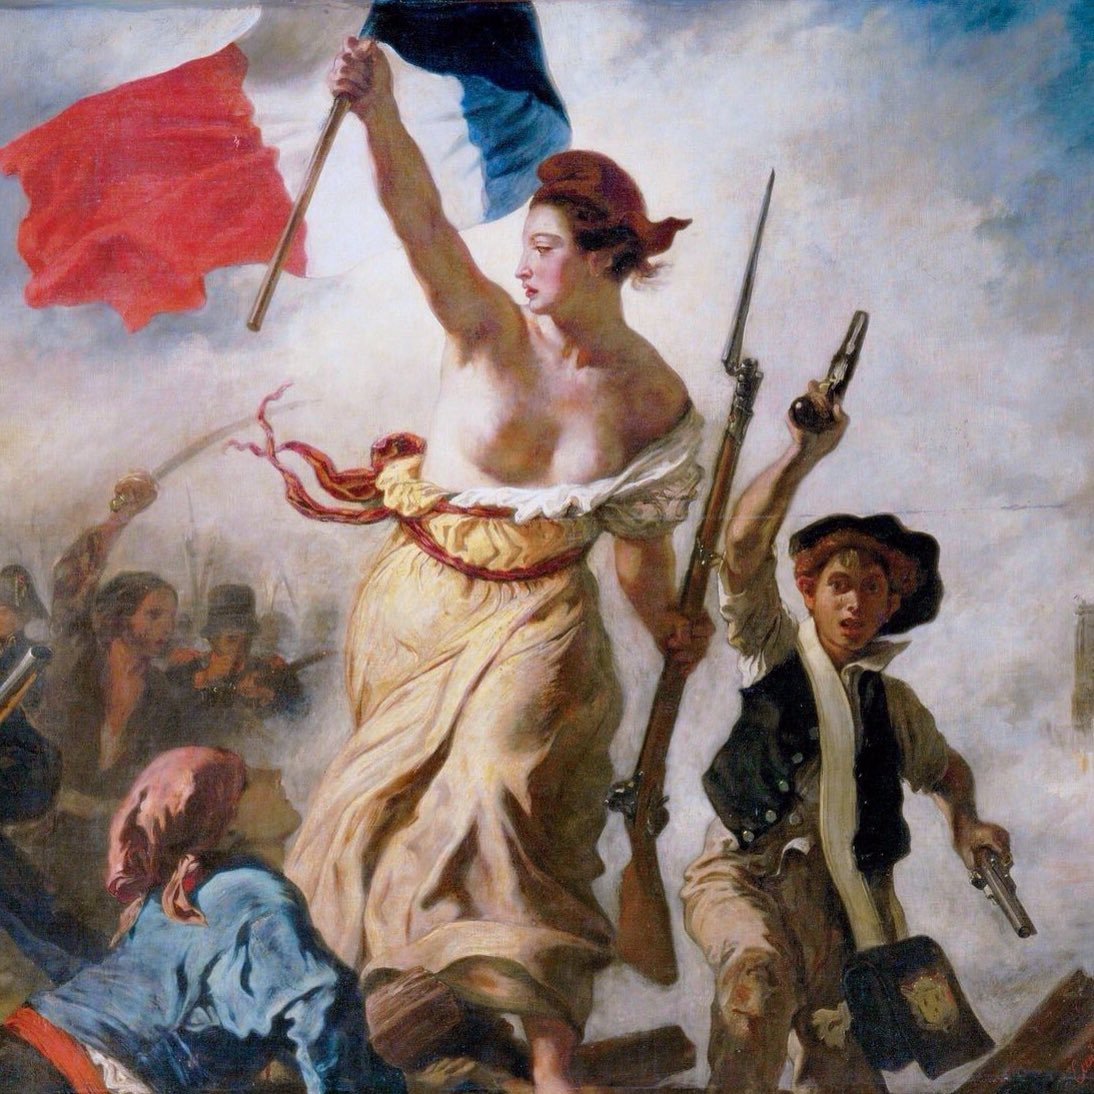 analysis of delacroix liberty leading the people 1830 The july revolution of 1830 was an event that delacroix simply had to paint he felt it was his duty as a painter to record this event as the (.